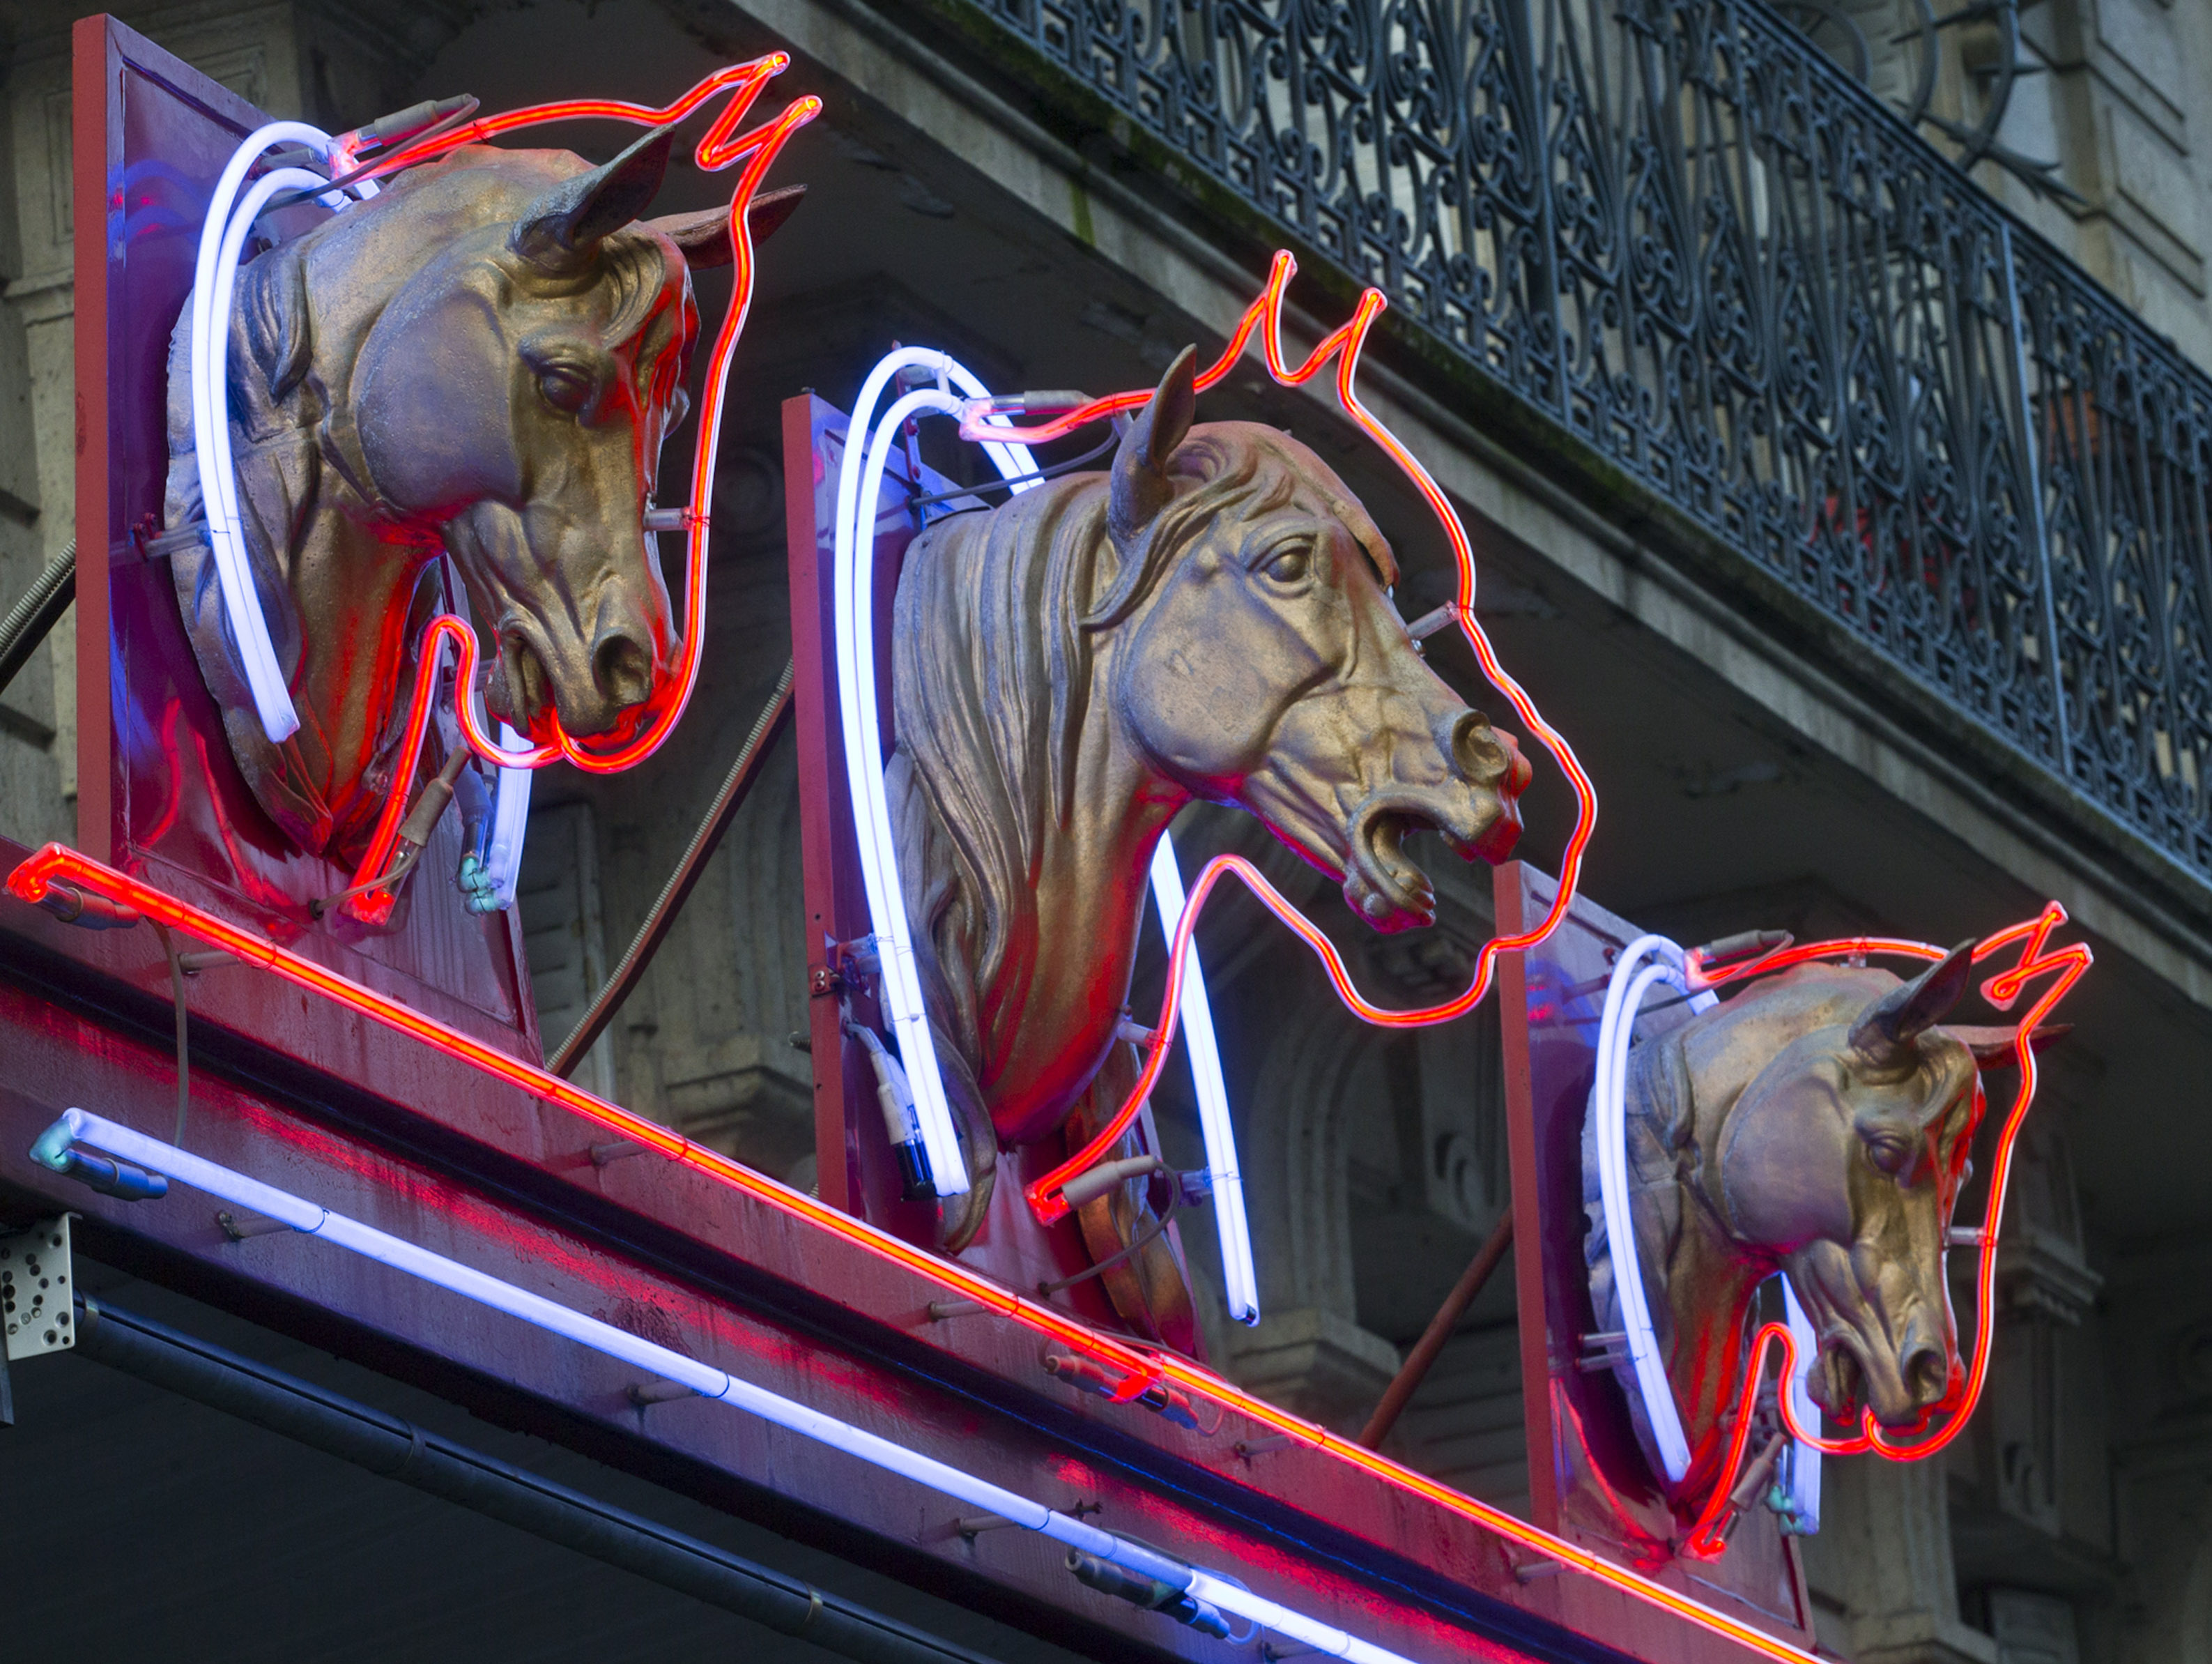 horse meat scandal in europe 2013 Read horse meat scandal latest on itv news all the tuesday 12th february 2013 news.